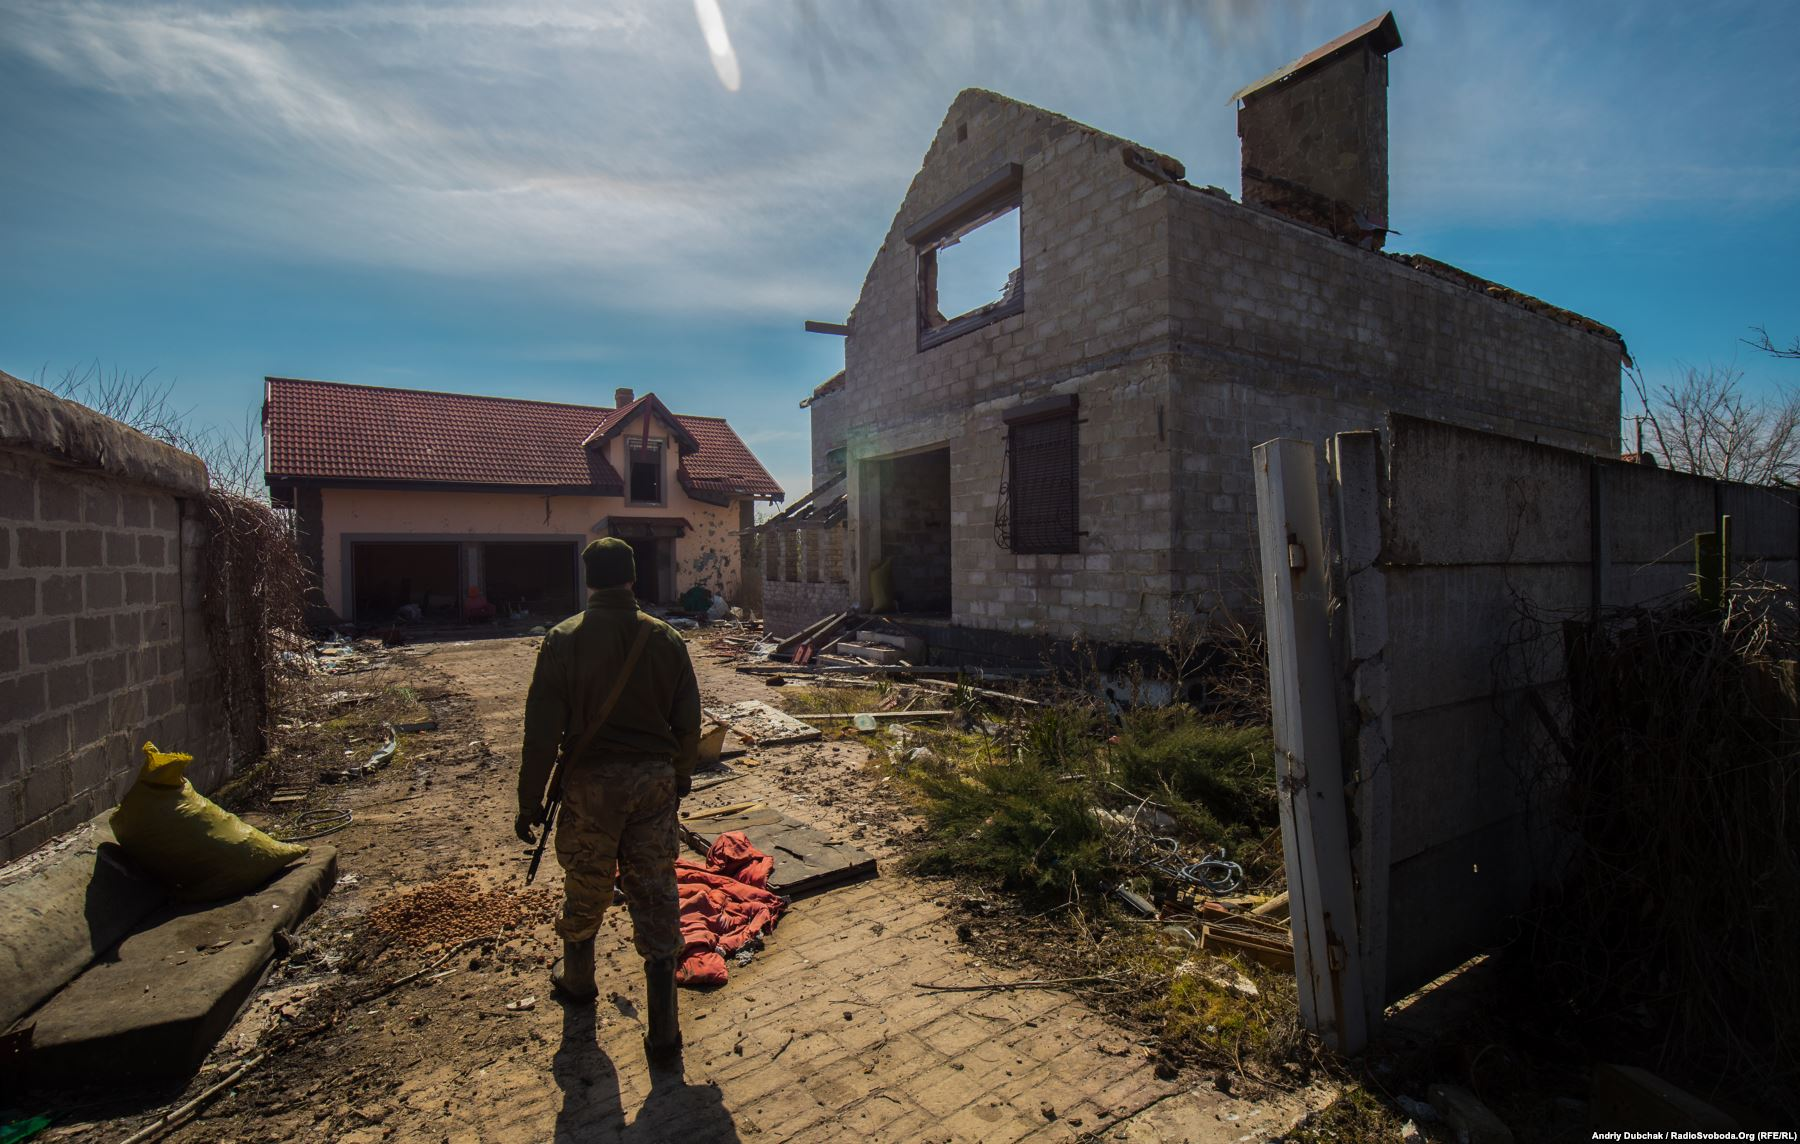 About half of the houses in Vodyane, a holiday village 12 kms from the Black Sea port Mariupol, have been destroyed or damaged beyond repair in fighting between Russia-backed separatists and the Ukrainian military. Photo by: Andriy Dubchak